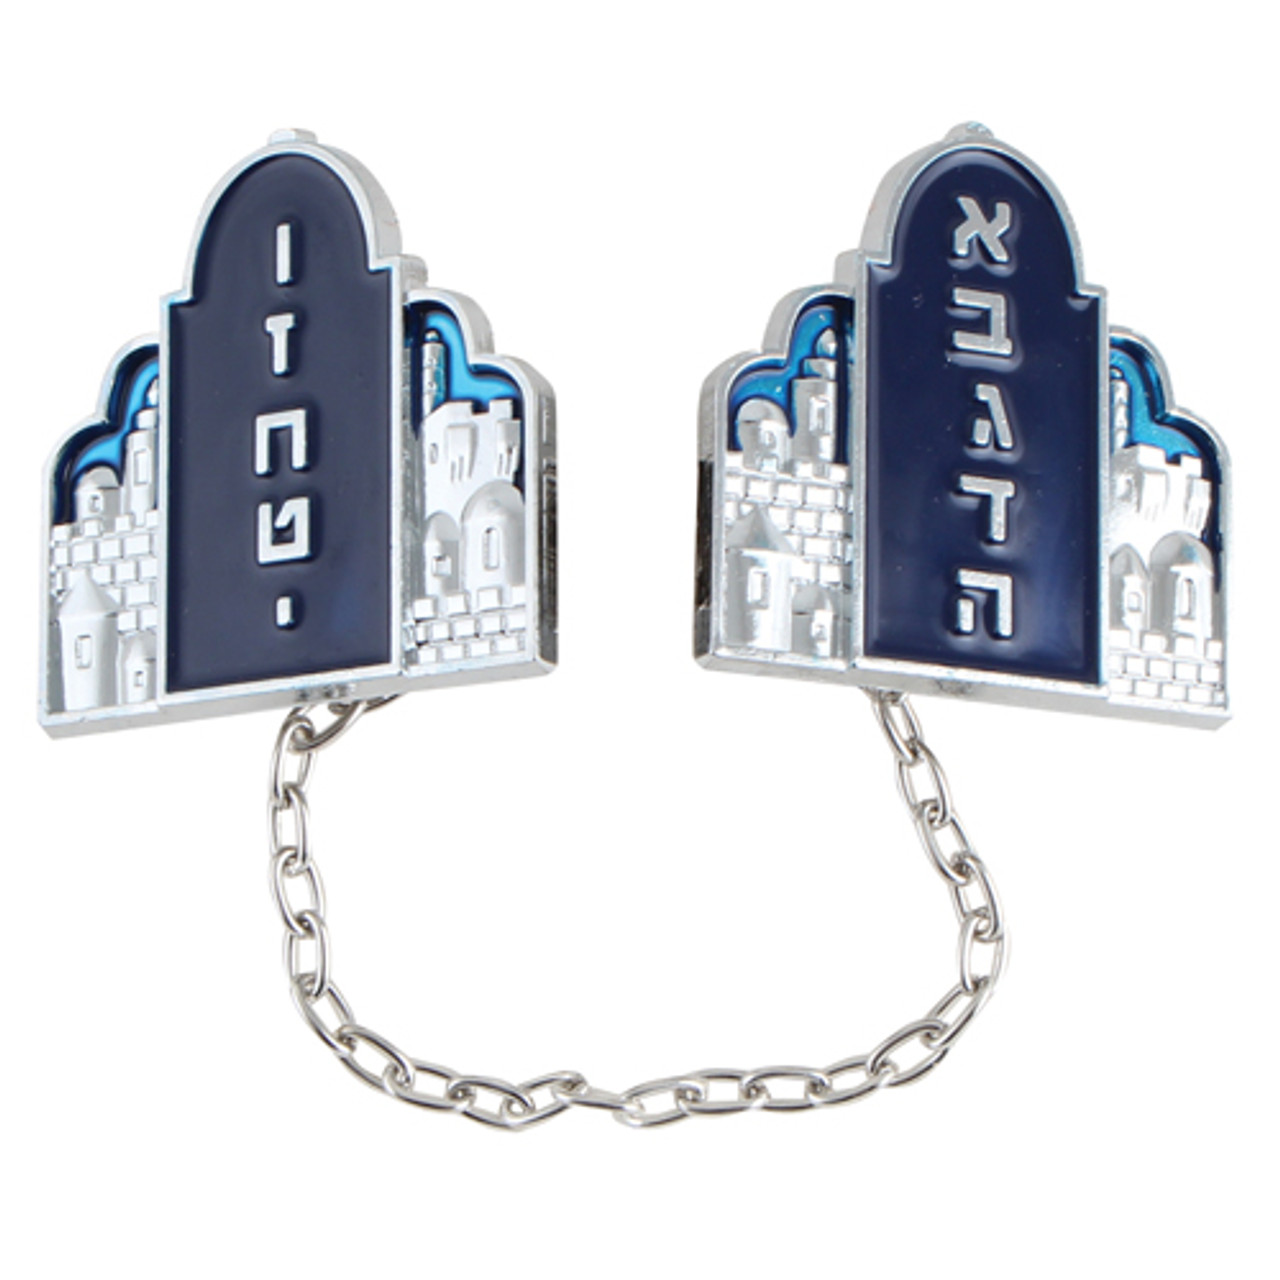 City of David Luchot HaBrit Tallit Clips